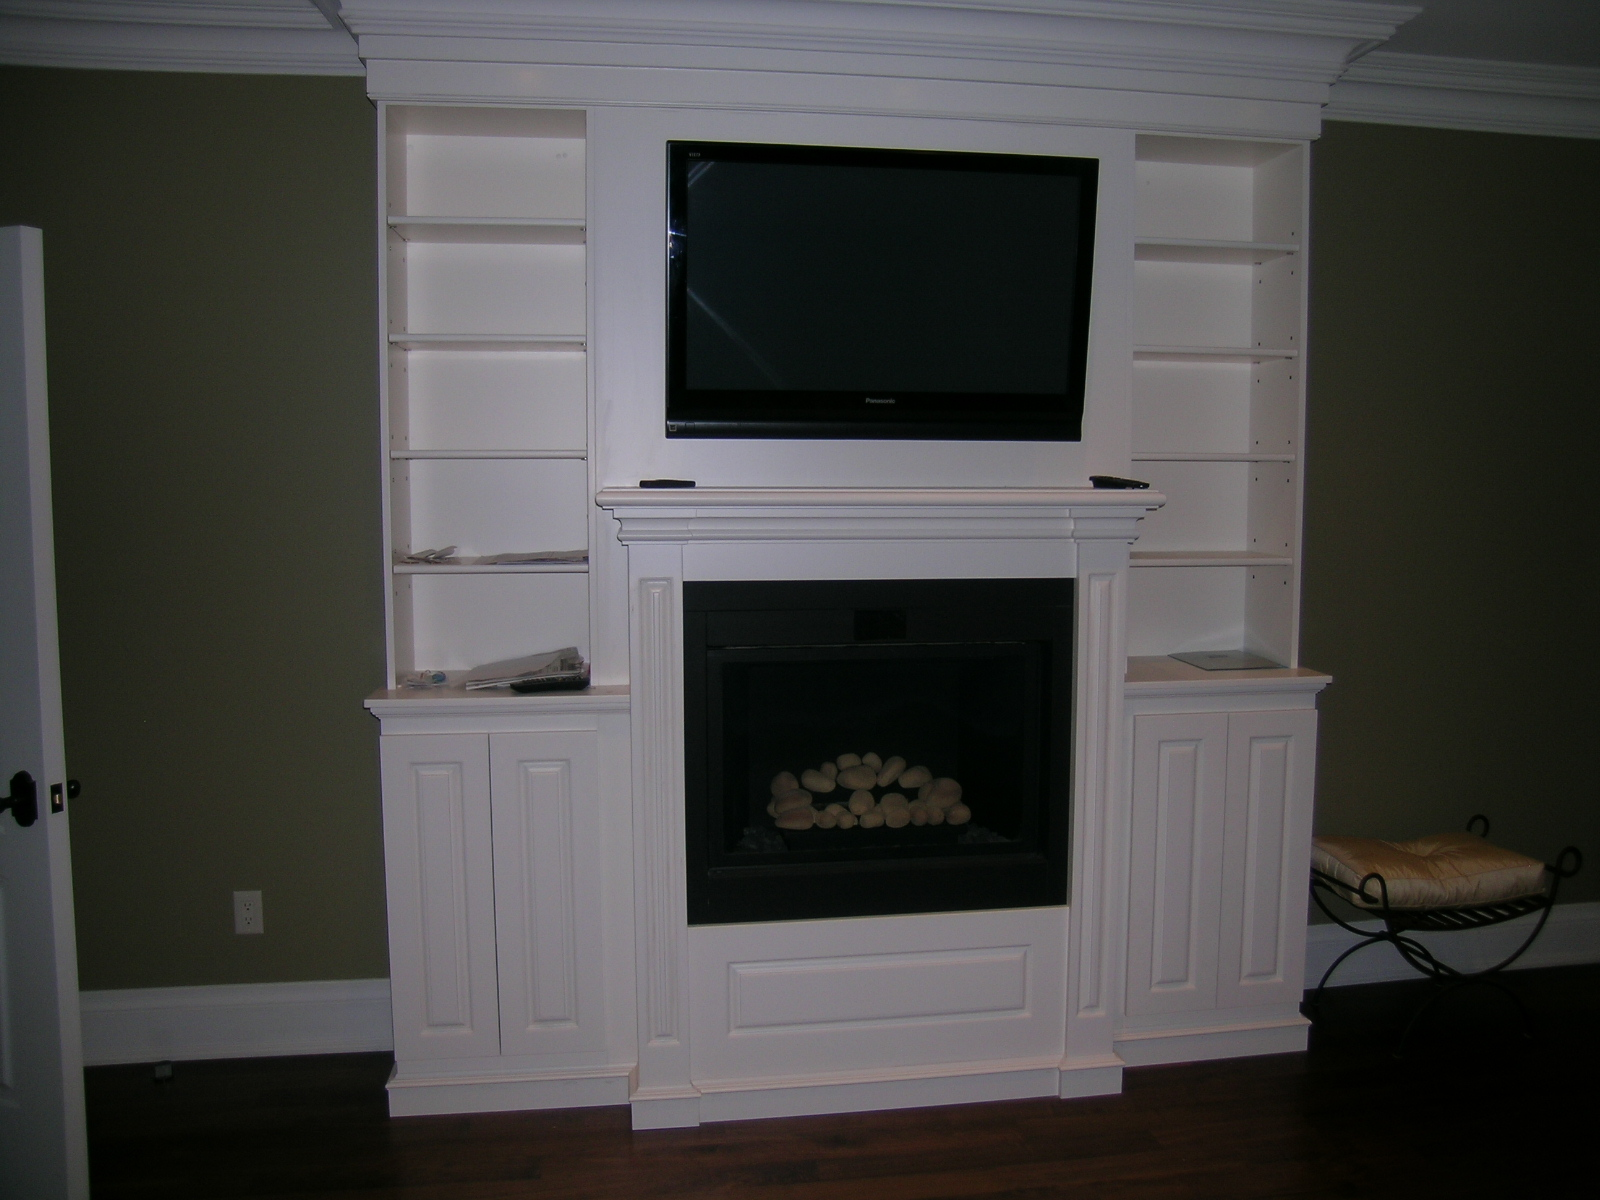 TV/Fireplace wall unit